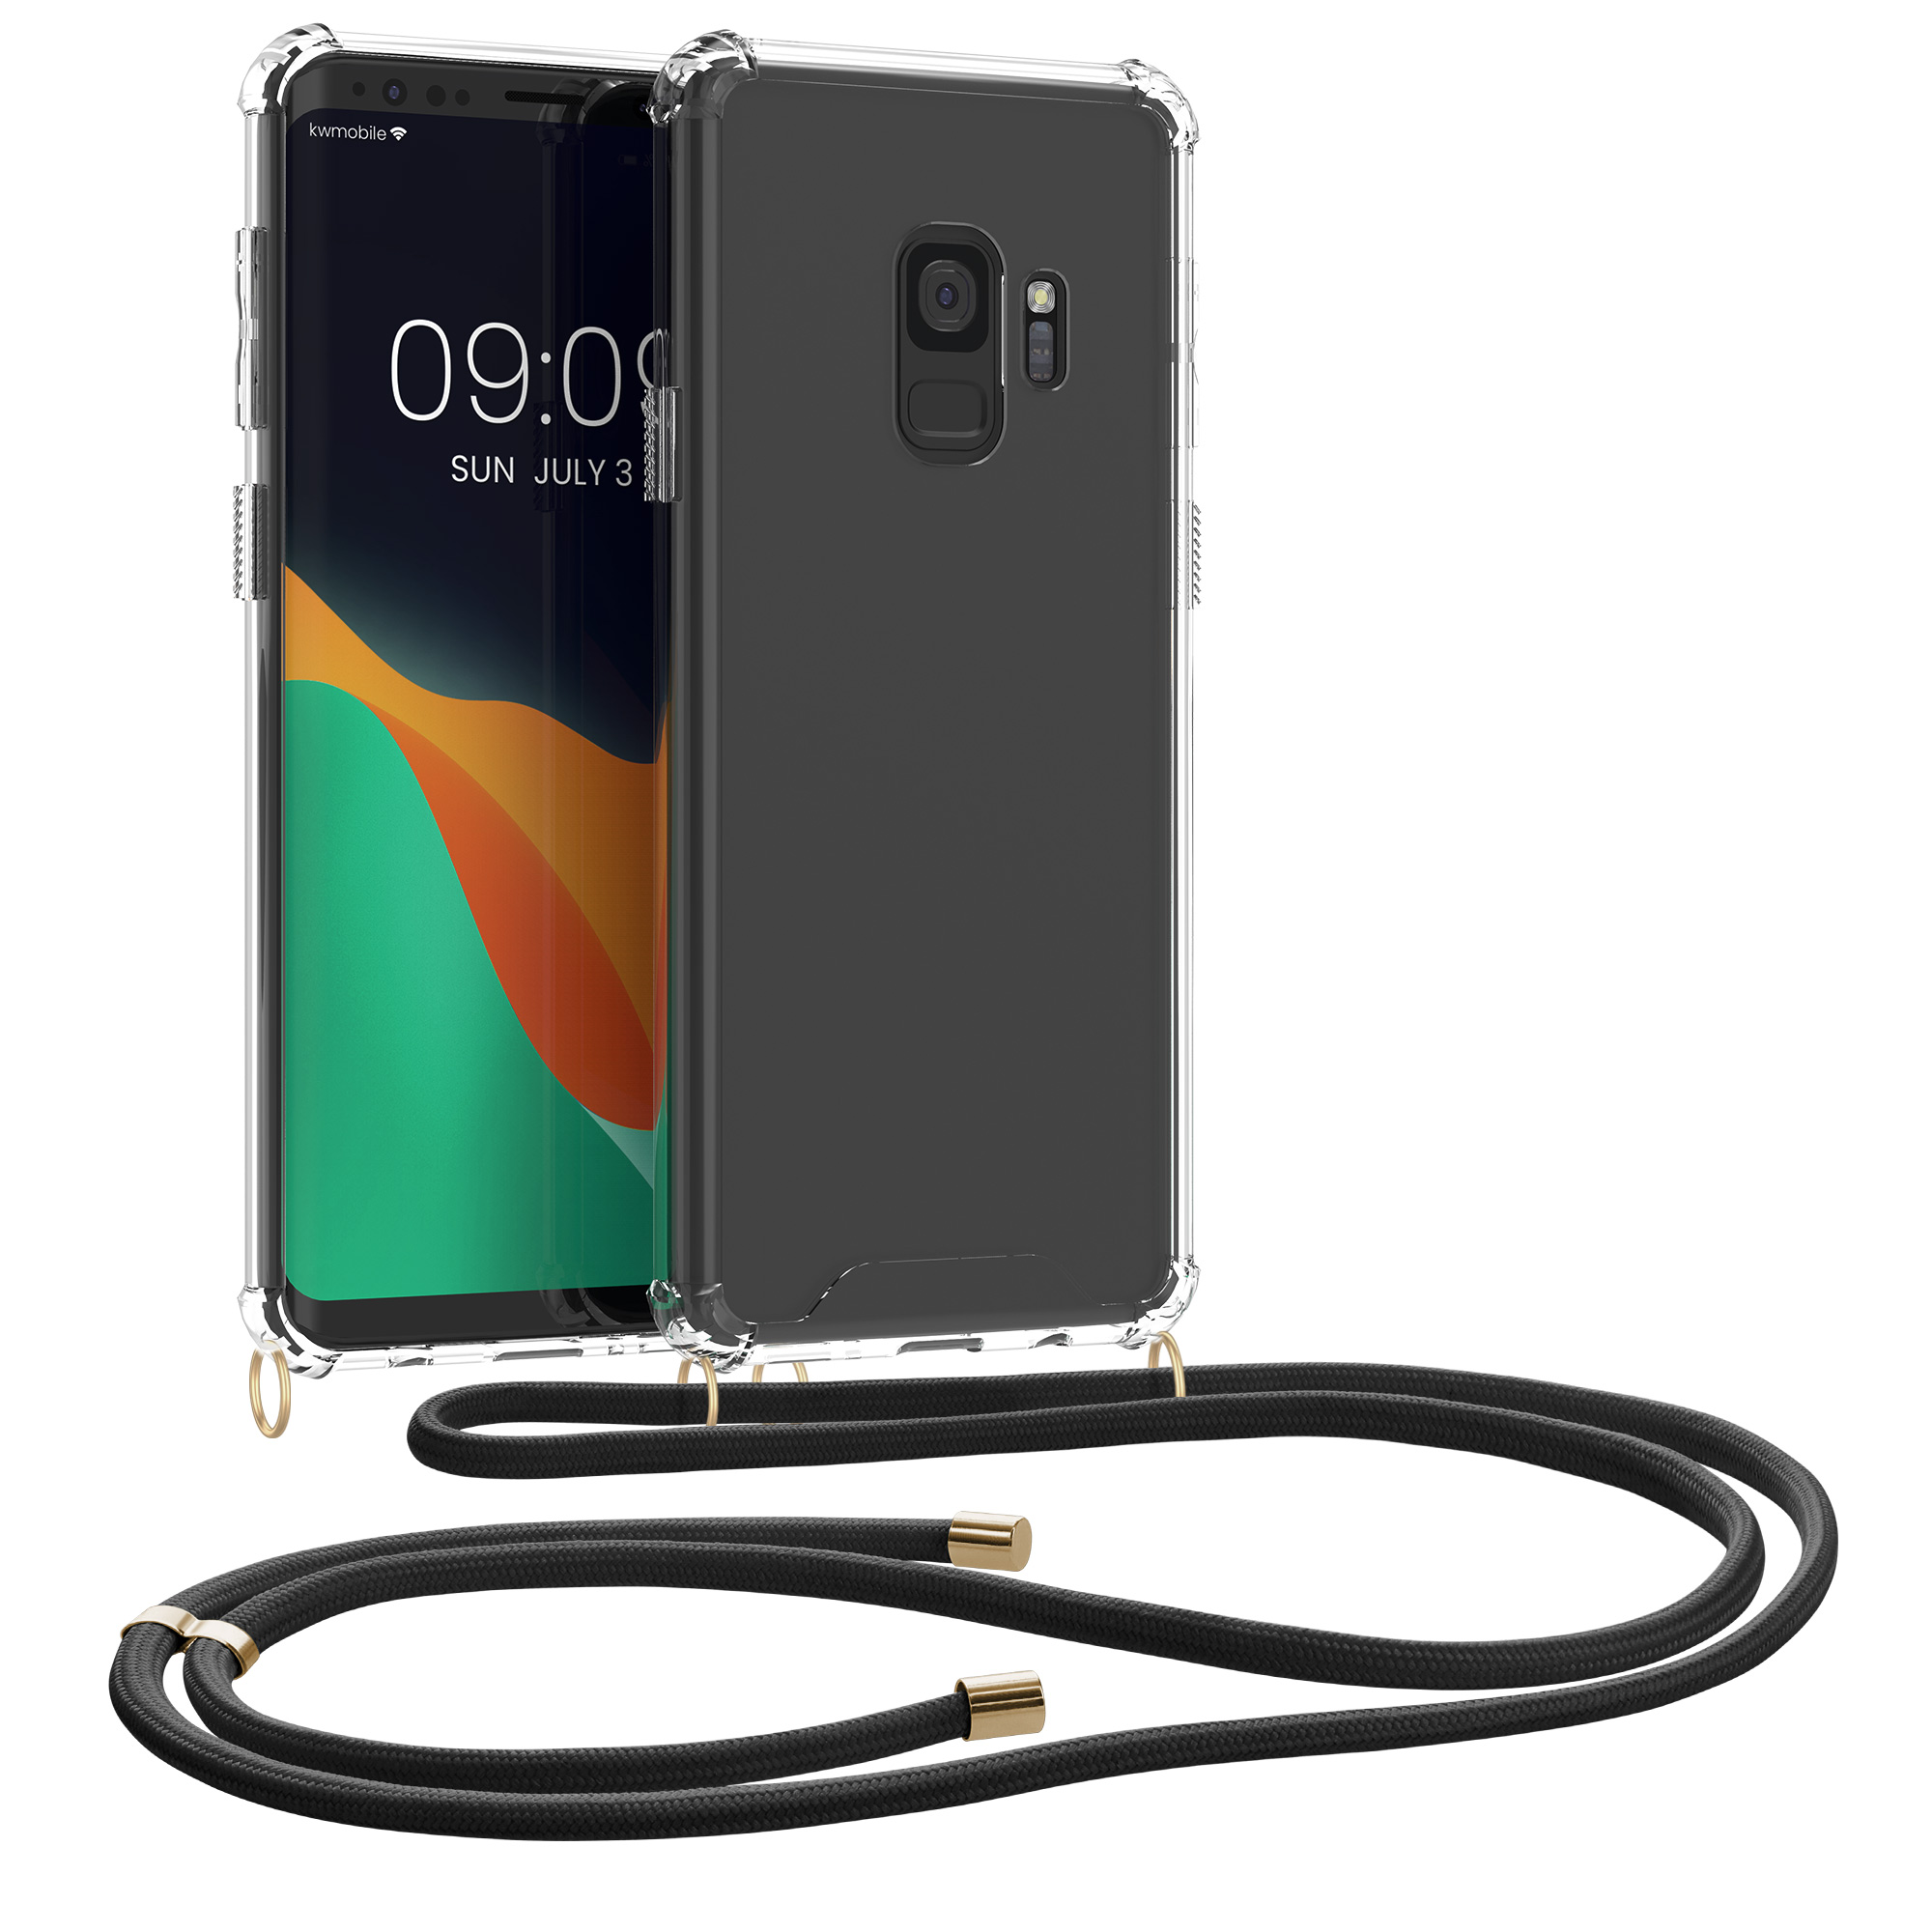 Pouzdro pro Samsung Galaxy S9 - Clear Transparent TPU Cell Phone Cover with Neck Cord Lanyard Strap - Transparent / Black